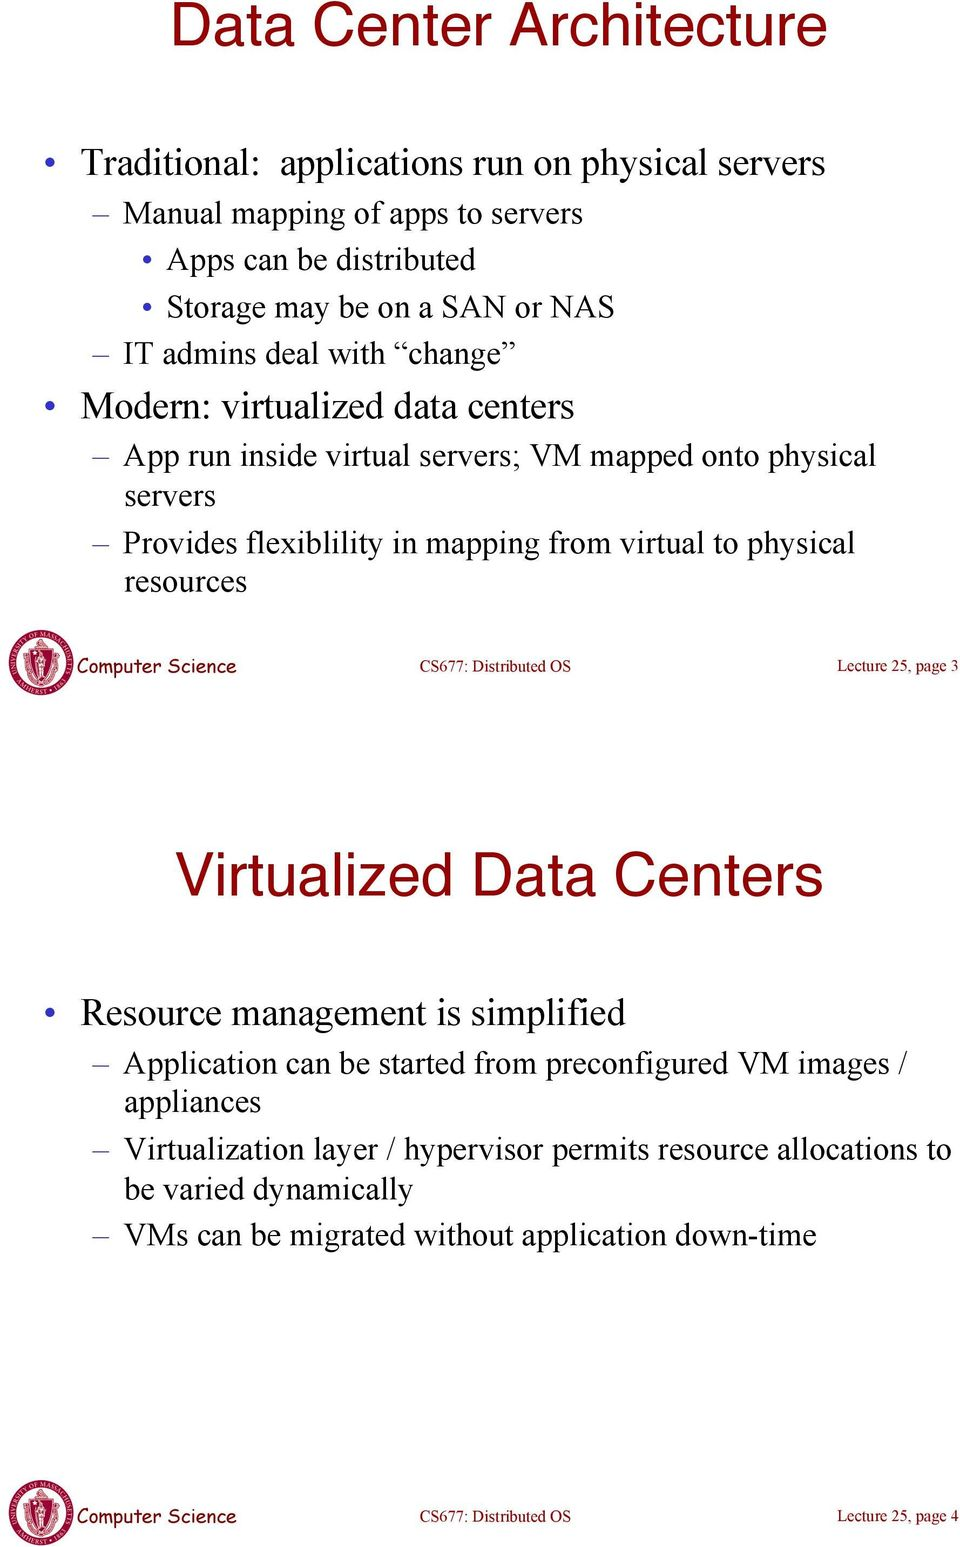 "virtual to physical resources Lecture 25, page 3 Virtualized Data Centers"" Resource management is simplified Application can be started from preconfigured VM images"